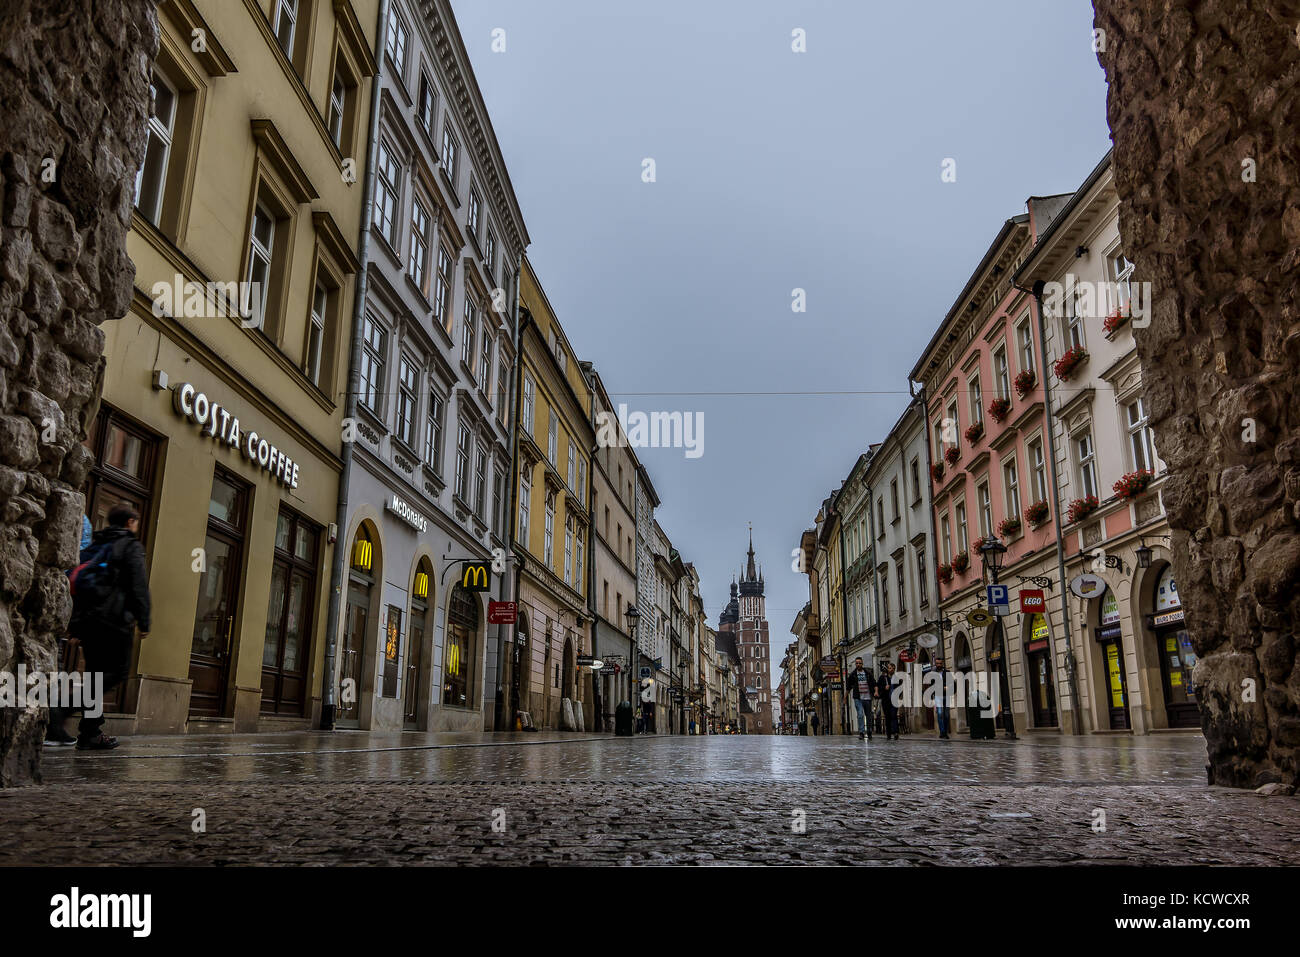 Krakow Shops Stock Photos Krakow Shops Stock Images Page 3 Alamy